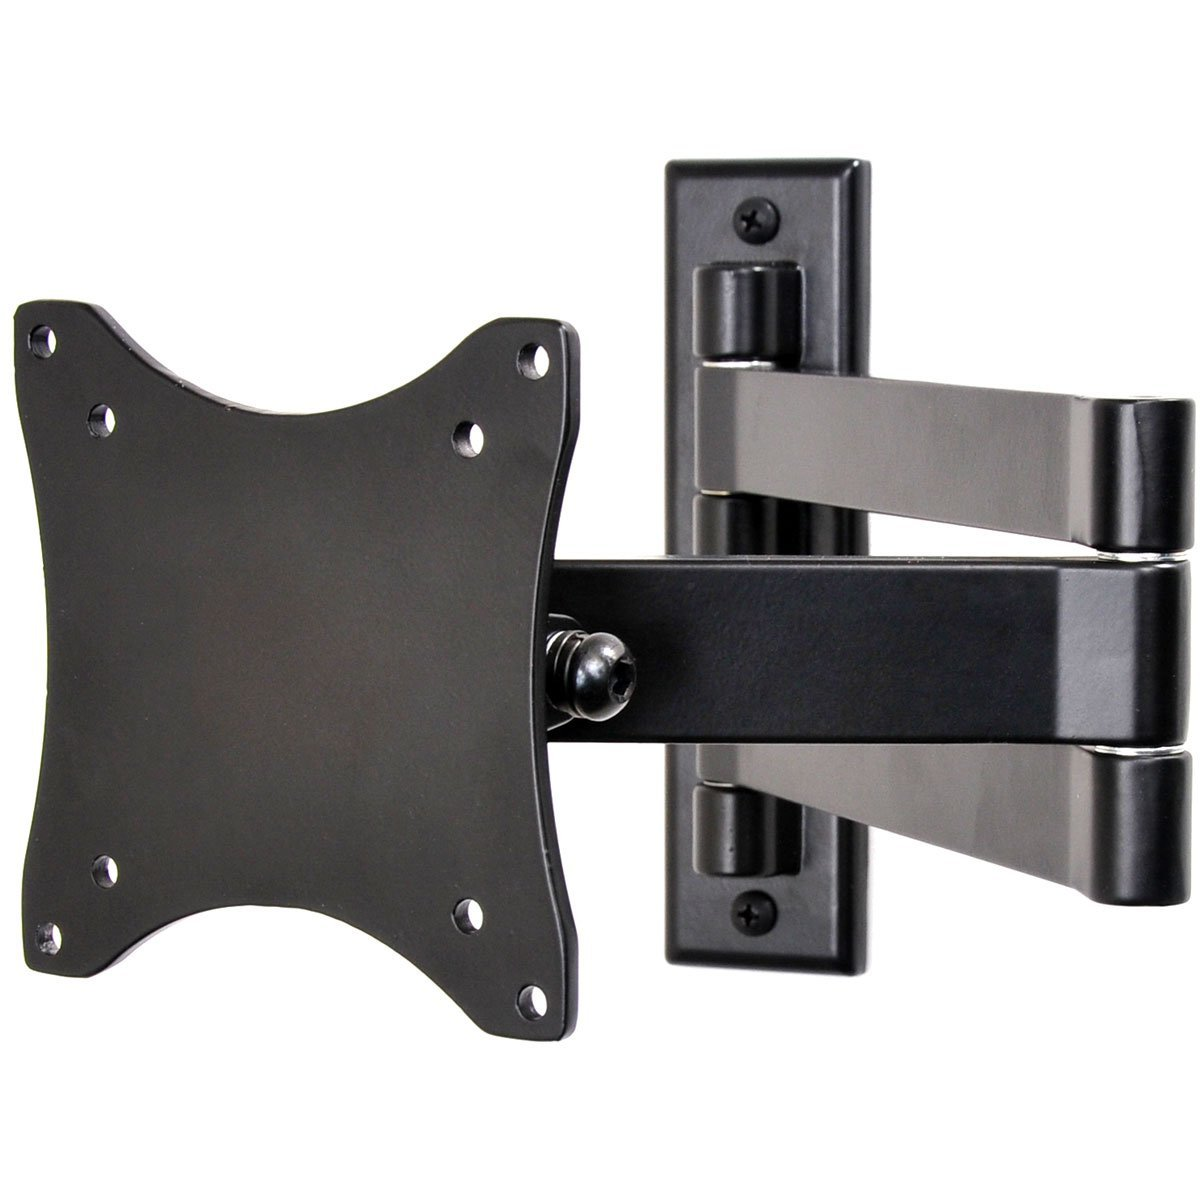 the best tv wall mount u2013 top 3 products - Tv Mount